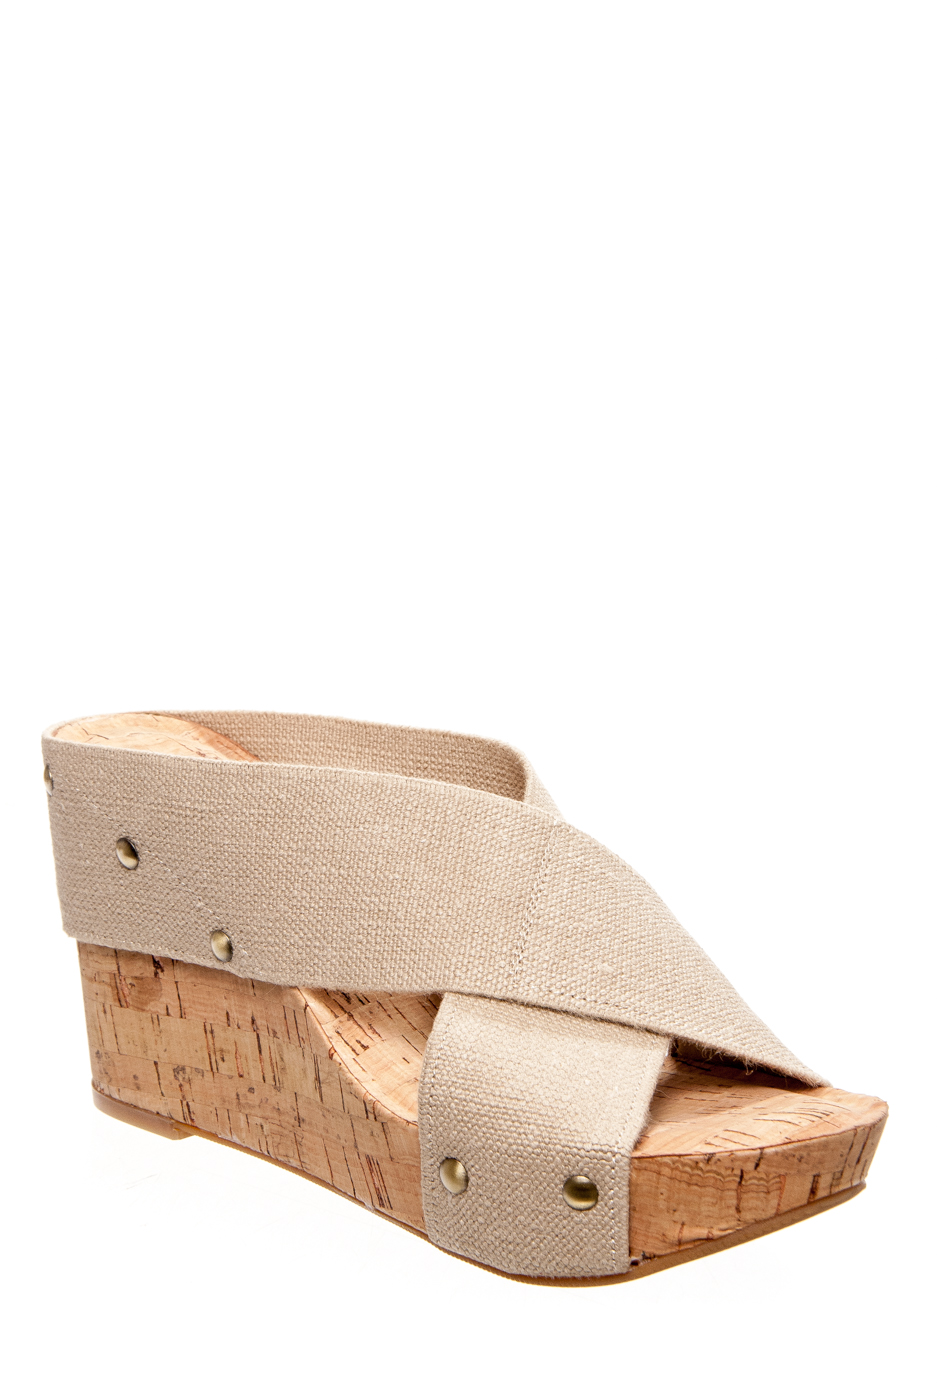 Lucky Brand Miller2 Slip On Wedge Sandals - Natural